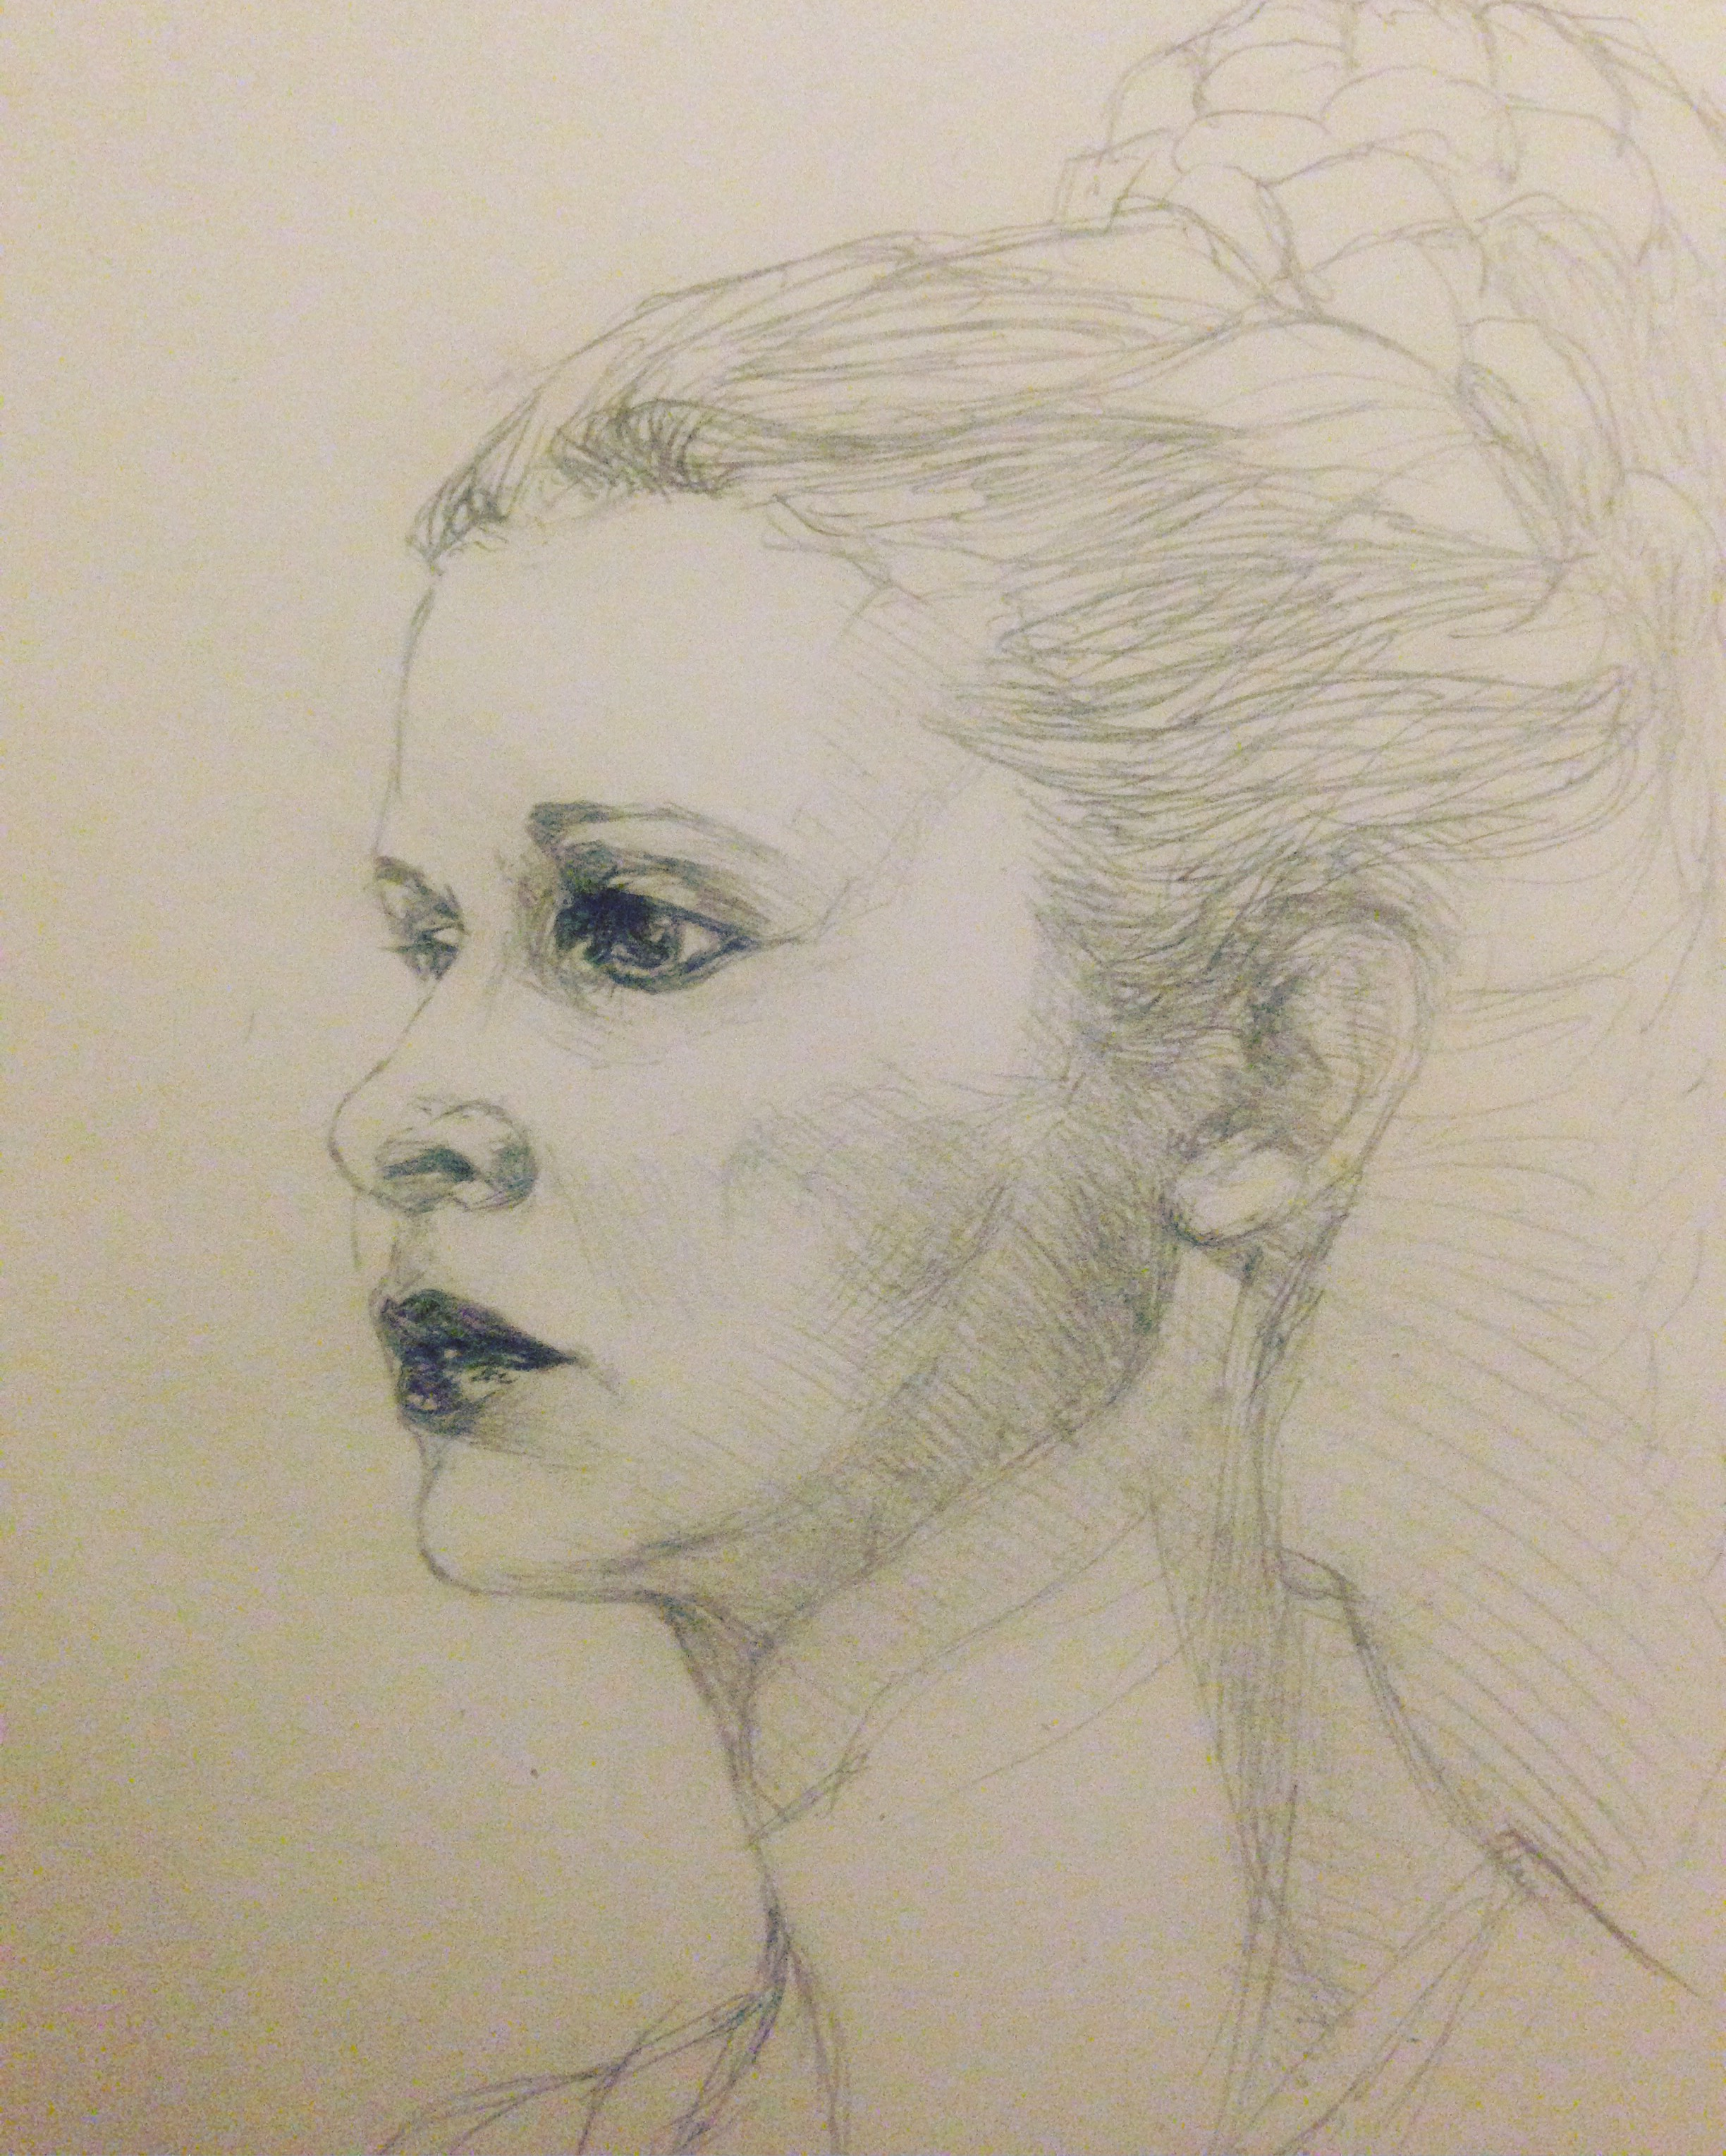 Princess Leia sketch